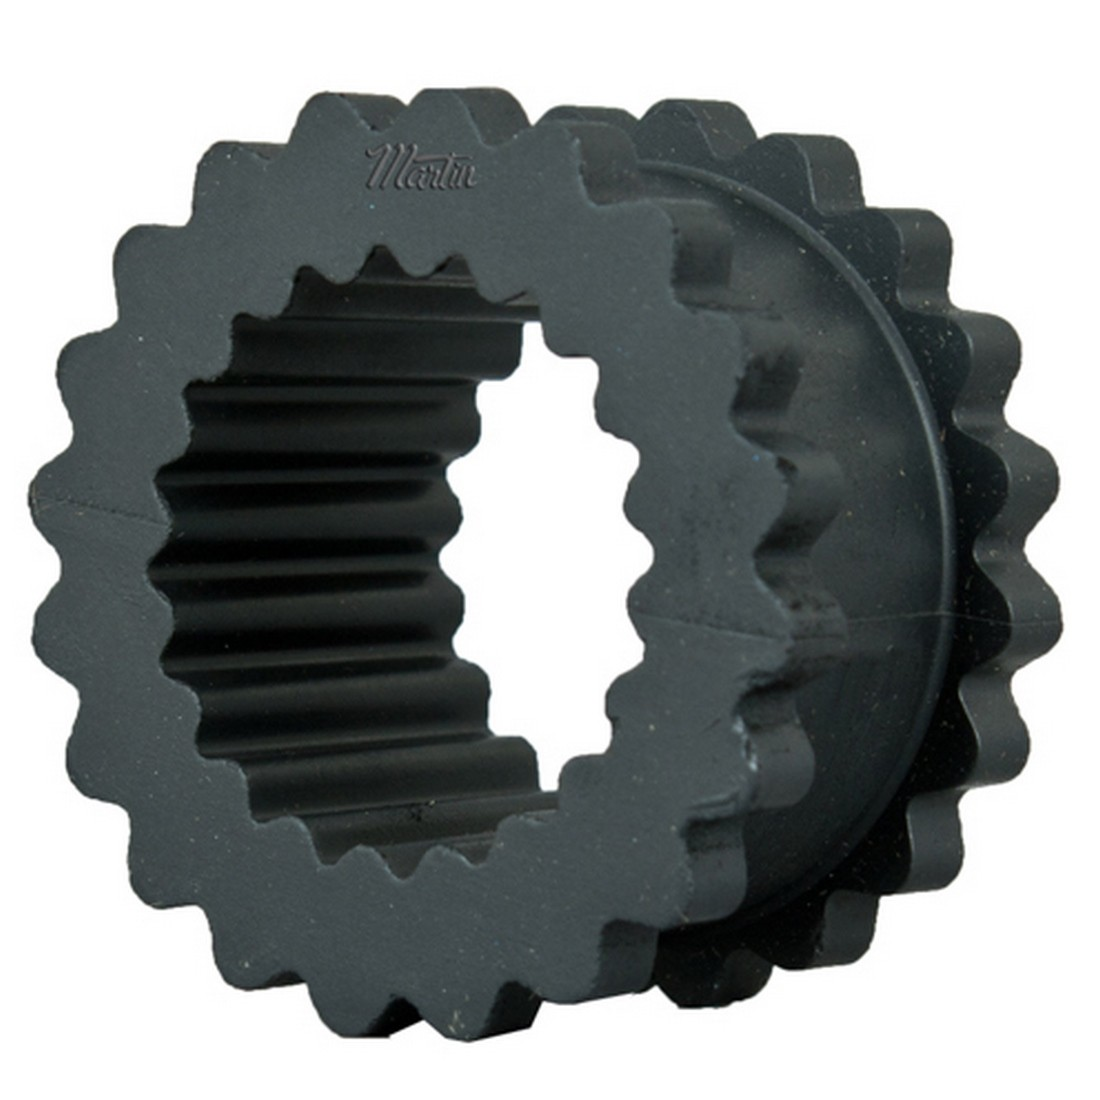 #8 RUBBER PROTECTION SLEEVE, Black EPDM Rubber